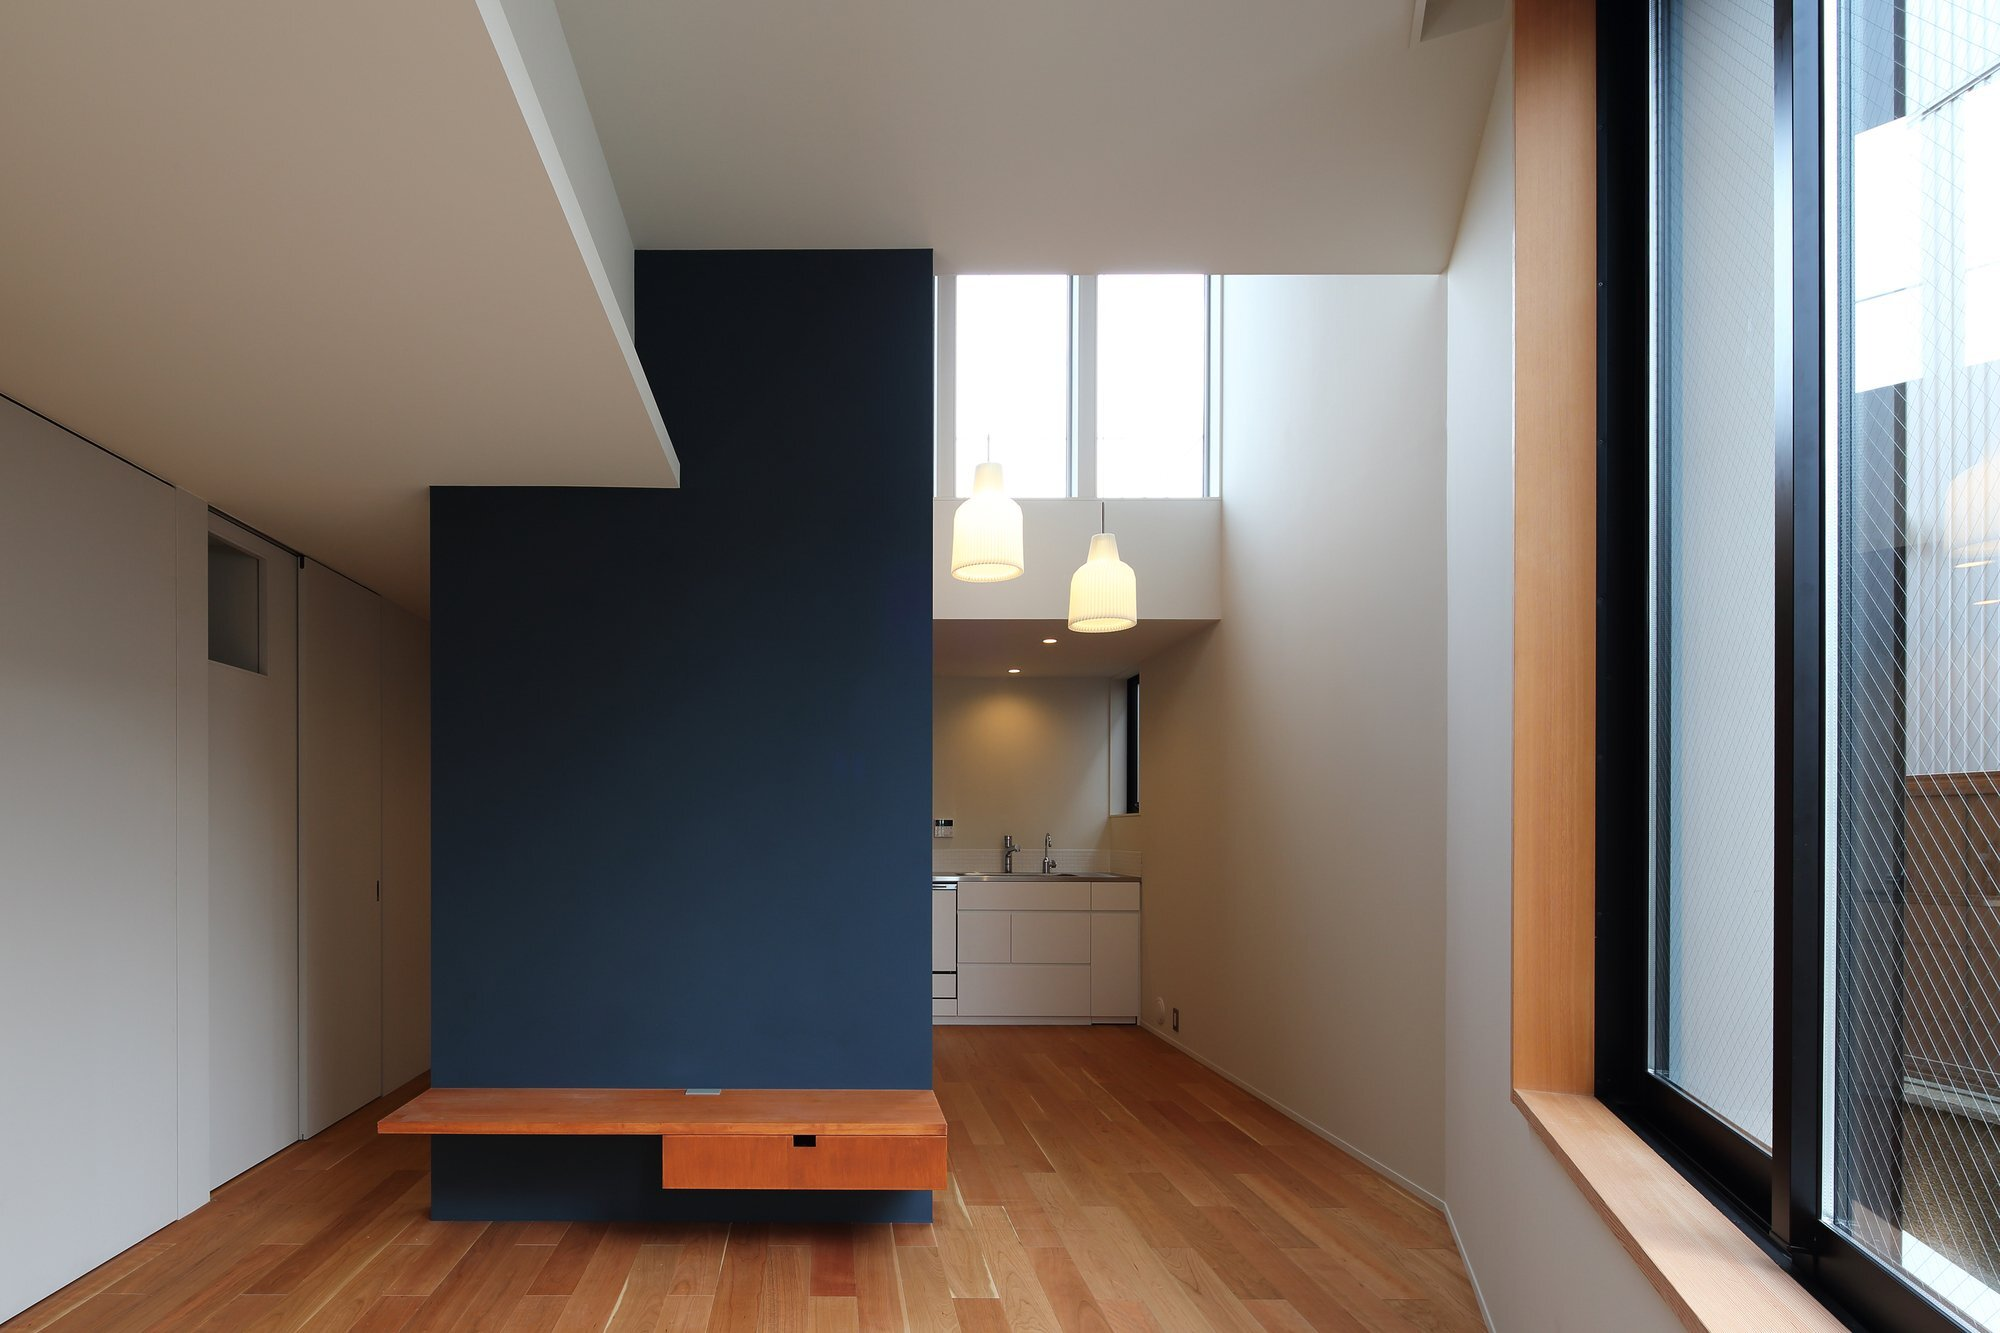 House U - Atelier KUKKA Architects - Tokyo - Living Area and Kitchen - Humble Homes